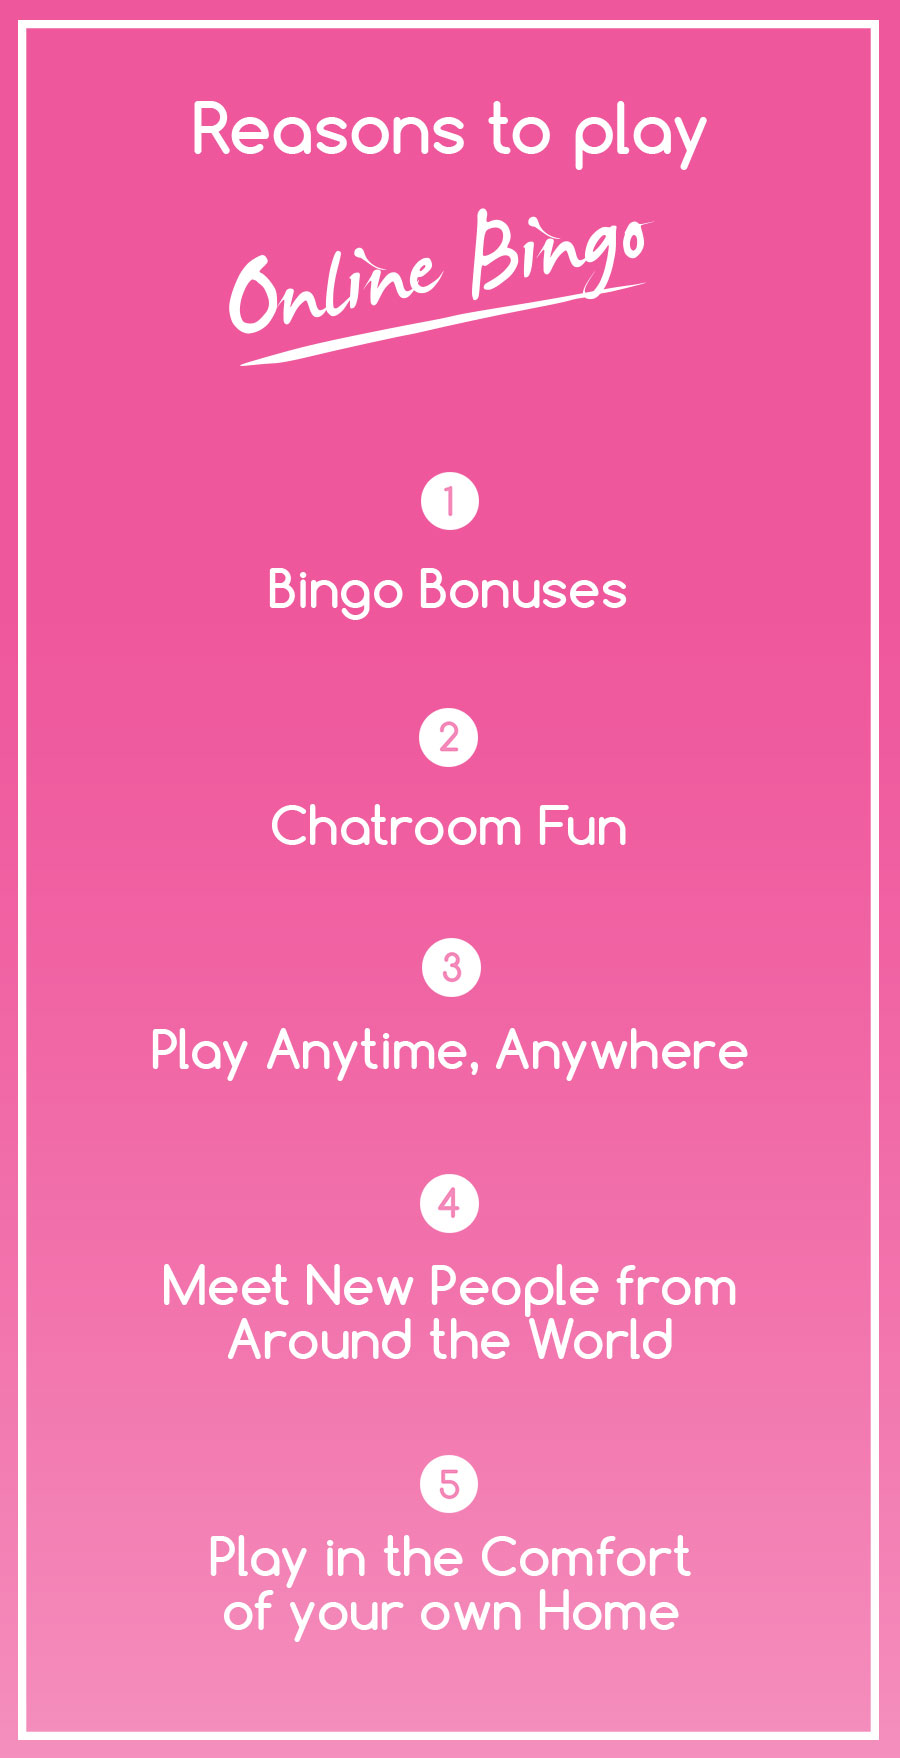 Reasons to Play Online Bingo